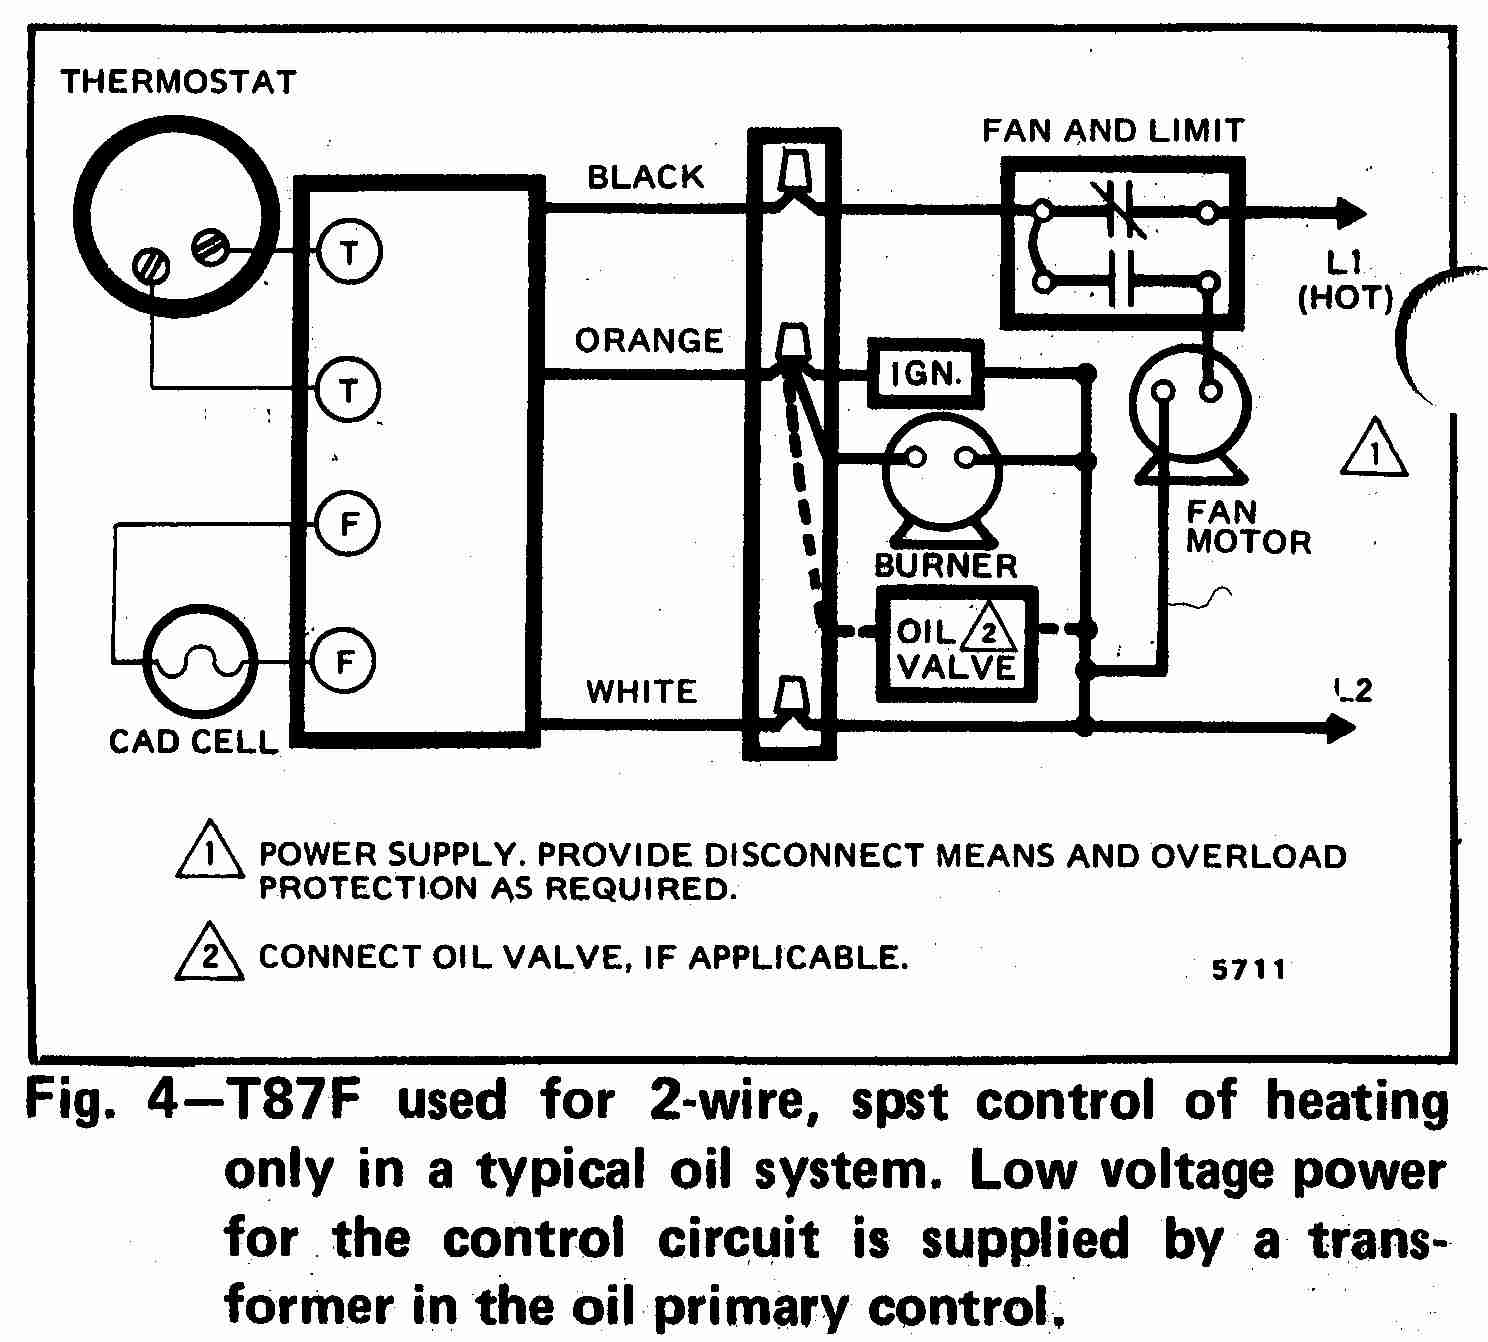 TT_T87F_0002_2W_DJF hvac control wiring diagram hvac compressor wiring diagram \u2022 free honeywell pressure switch wiring diagram at sewacar.co